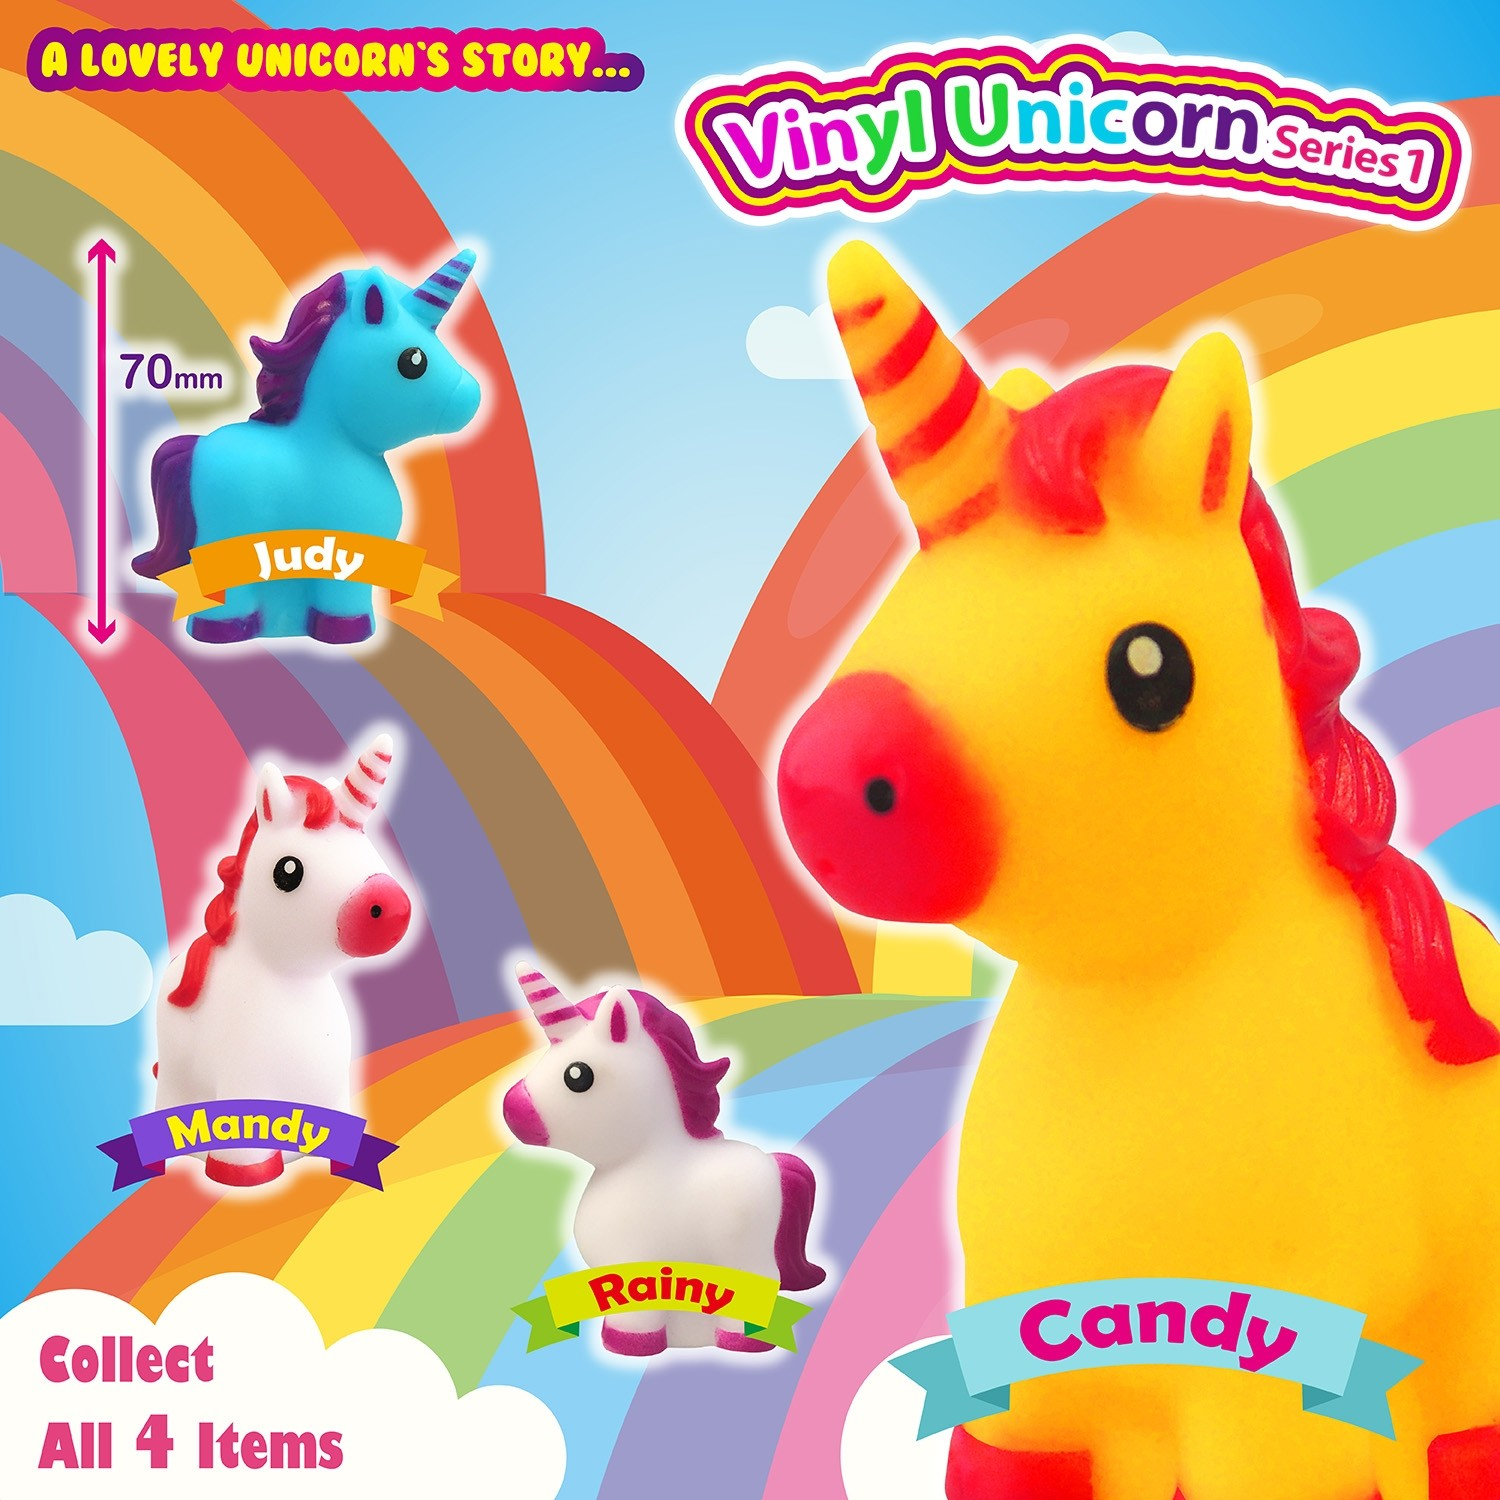 Vinyl Unicorn Series 1